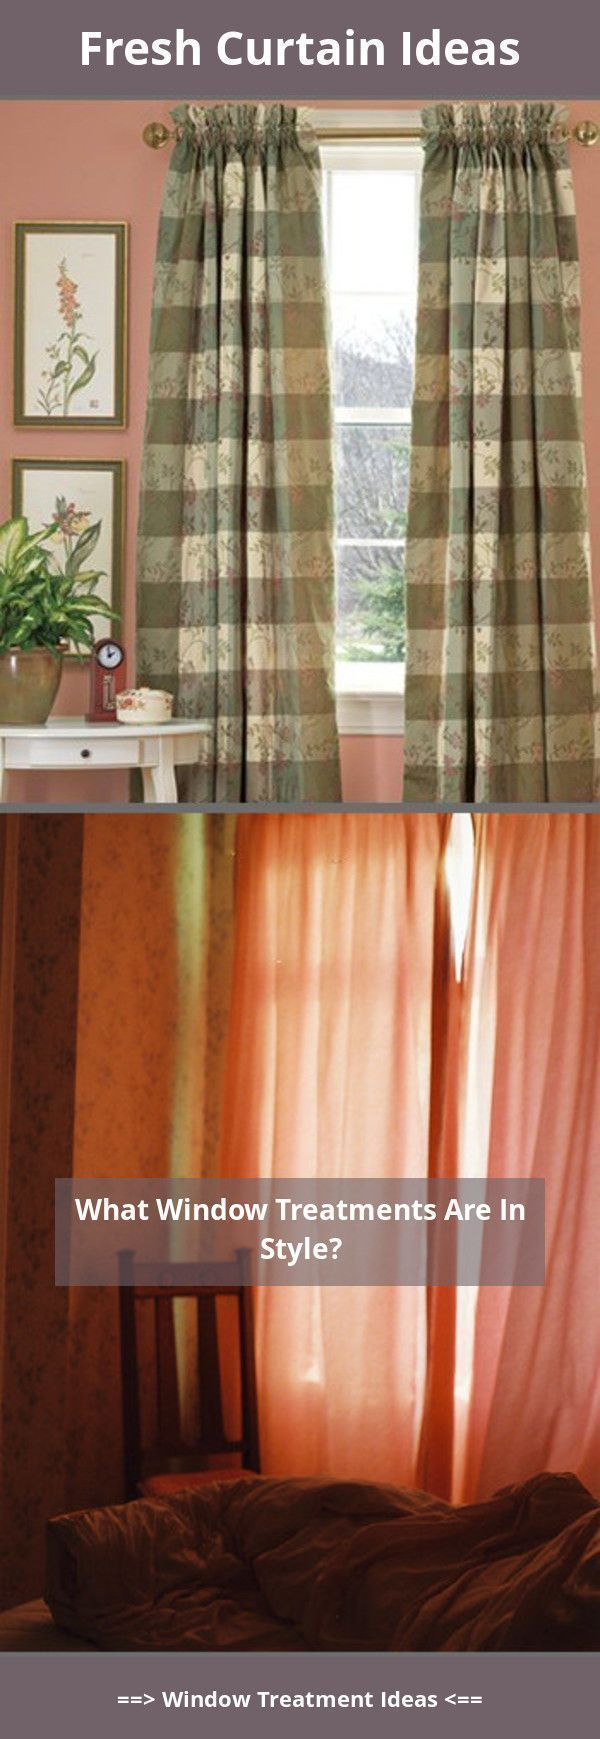 Long Narrow Vertical Window Treatments Blinds And Shades For Small Spaces Rooms Kitchens Livingroom Longnarrowkitchen Long Narrow Vertical Window Treatmen 2020